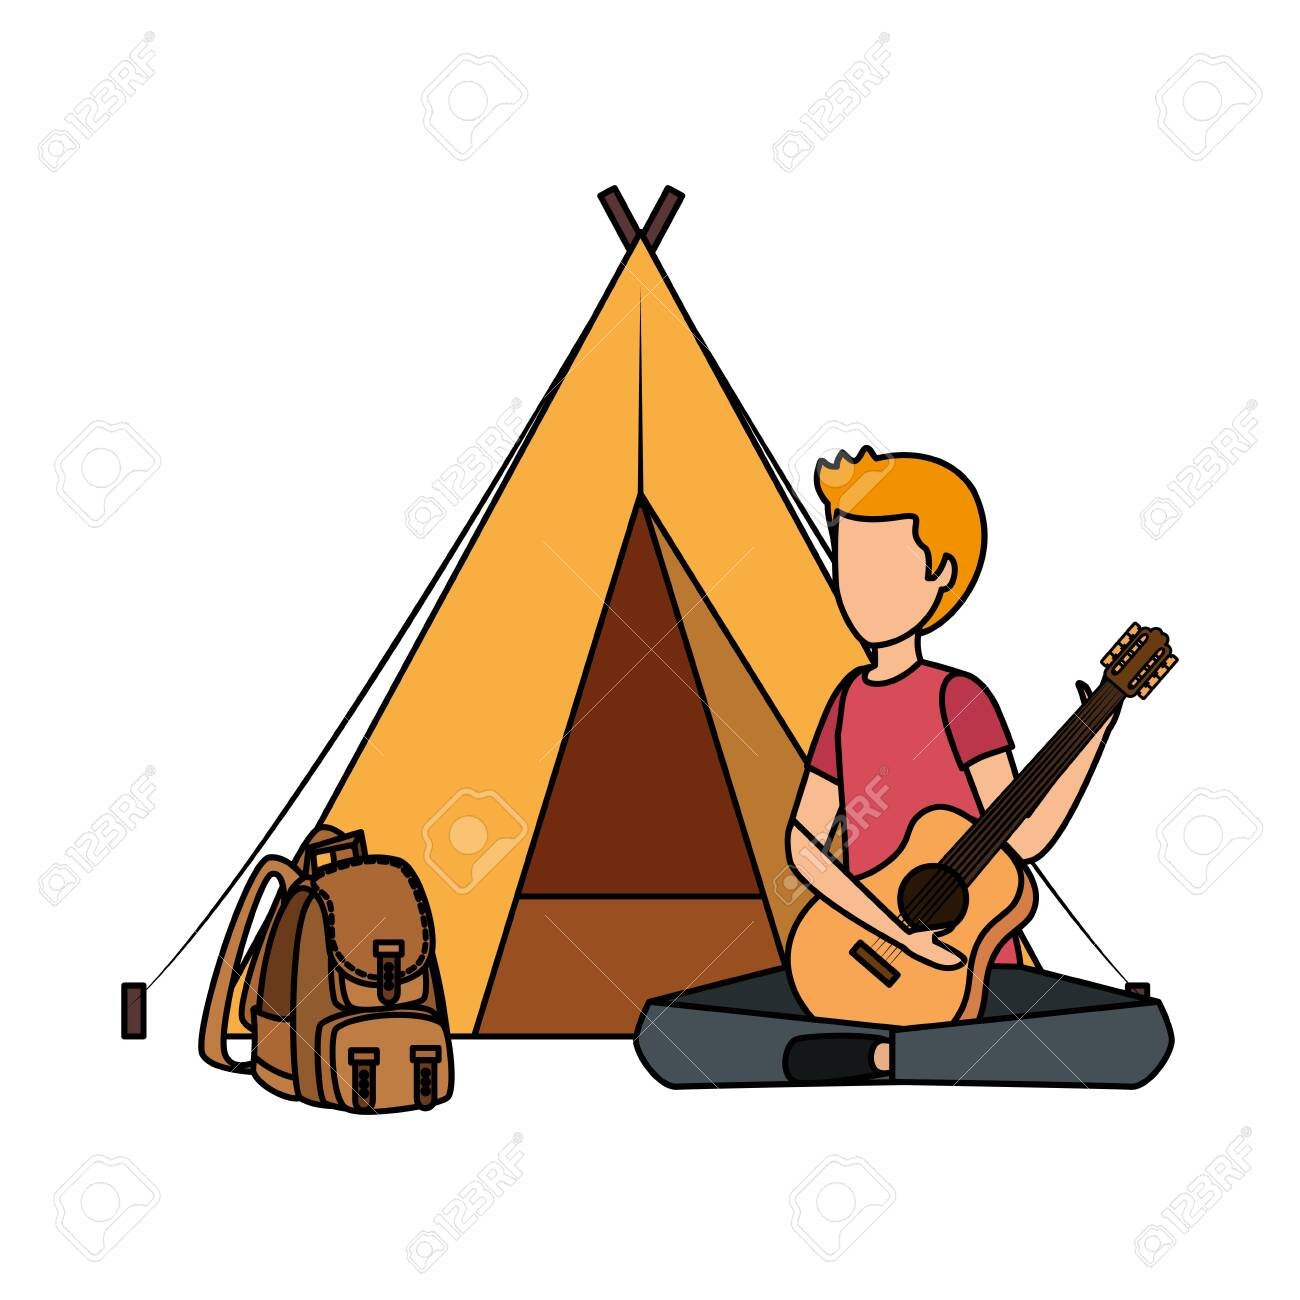 young man playing guitar with camping tent and travelbag vector illustration - 129879060